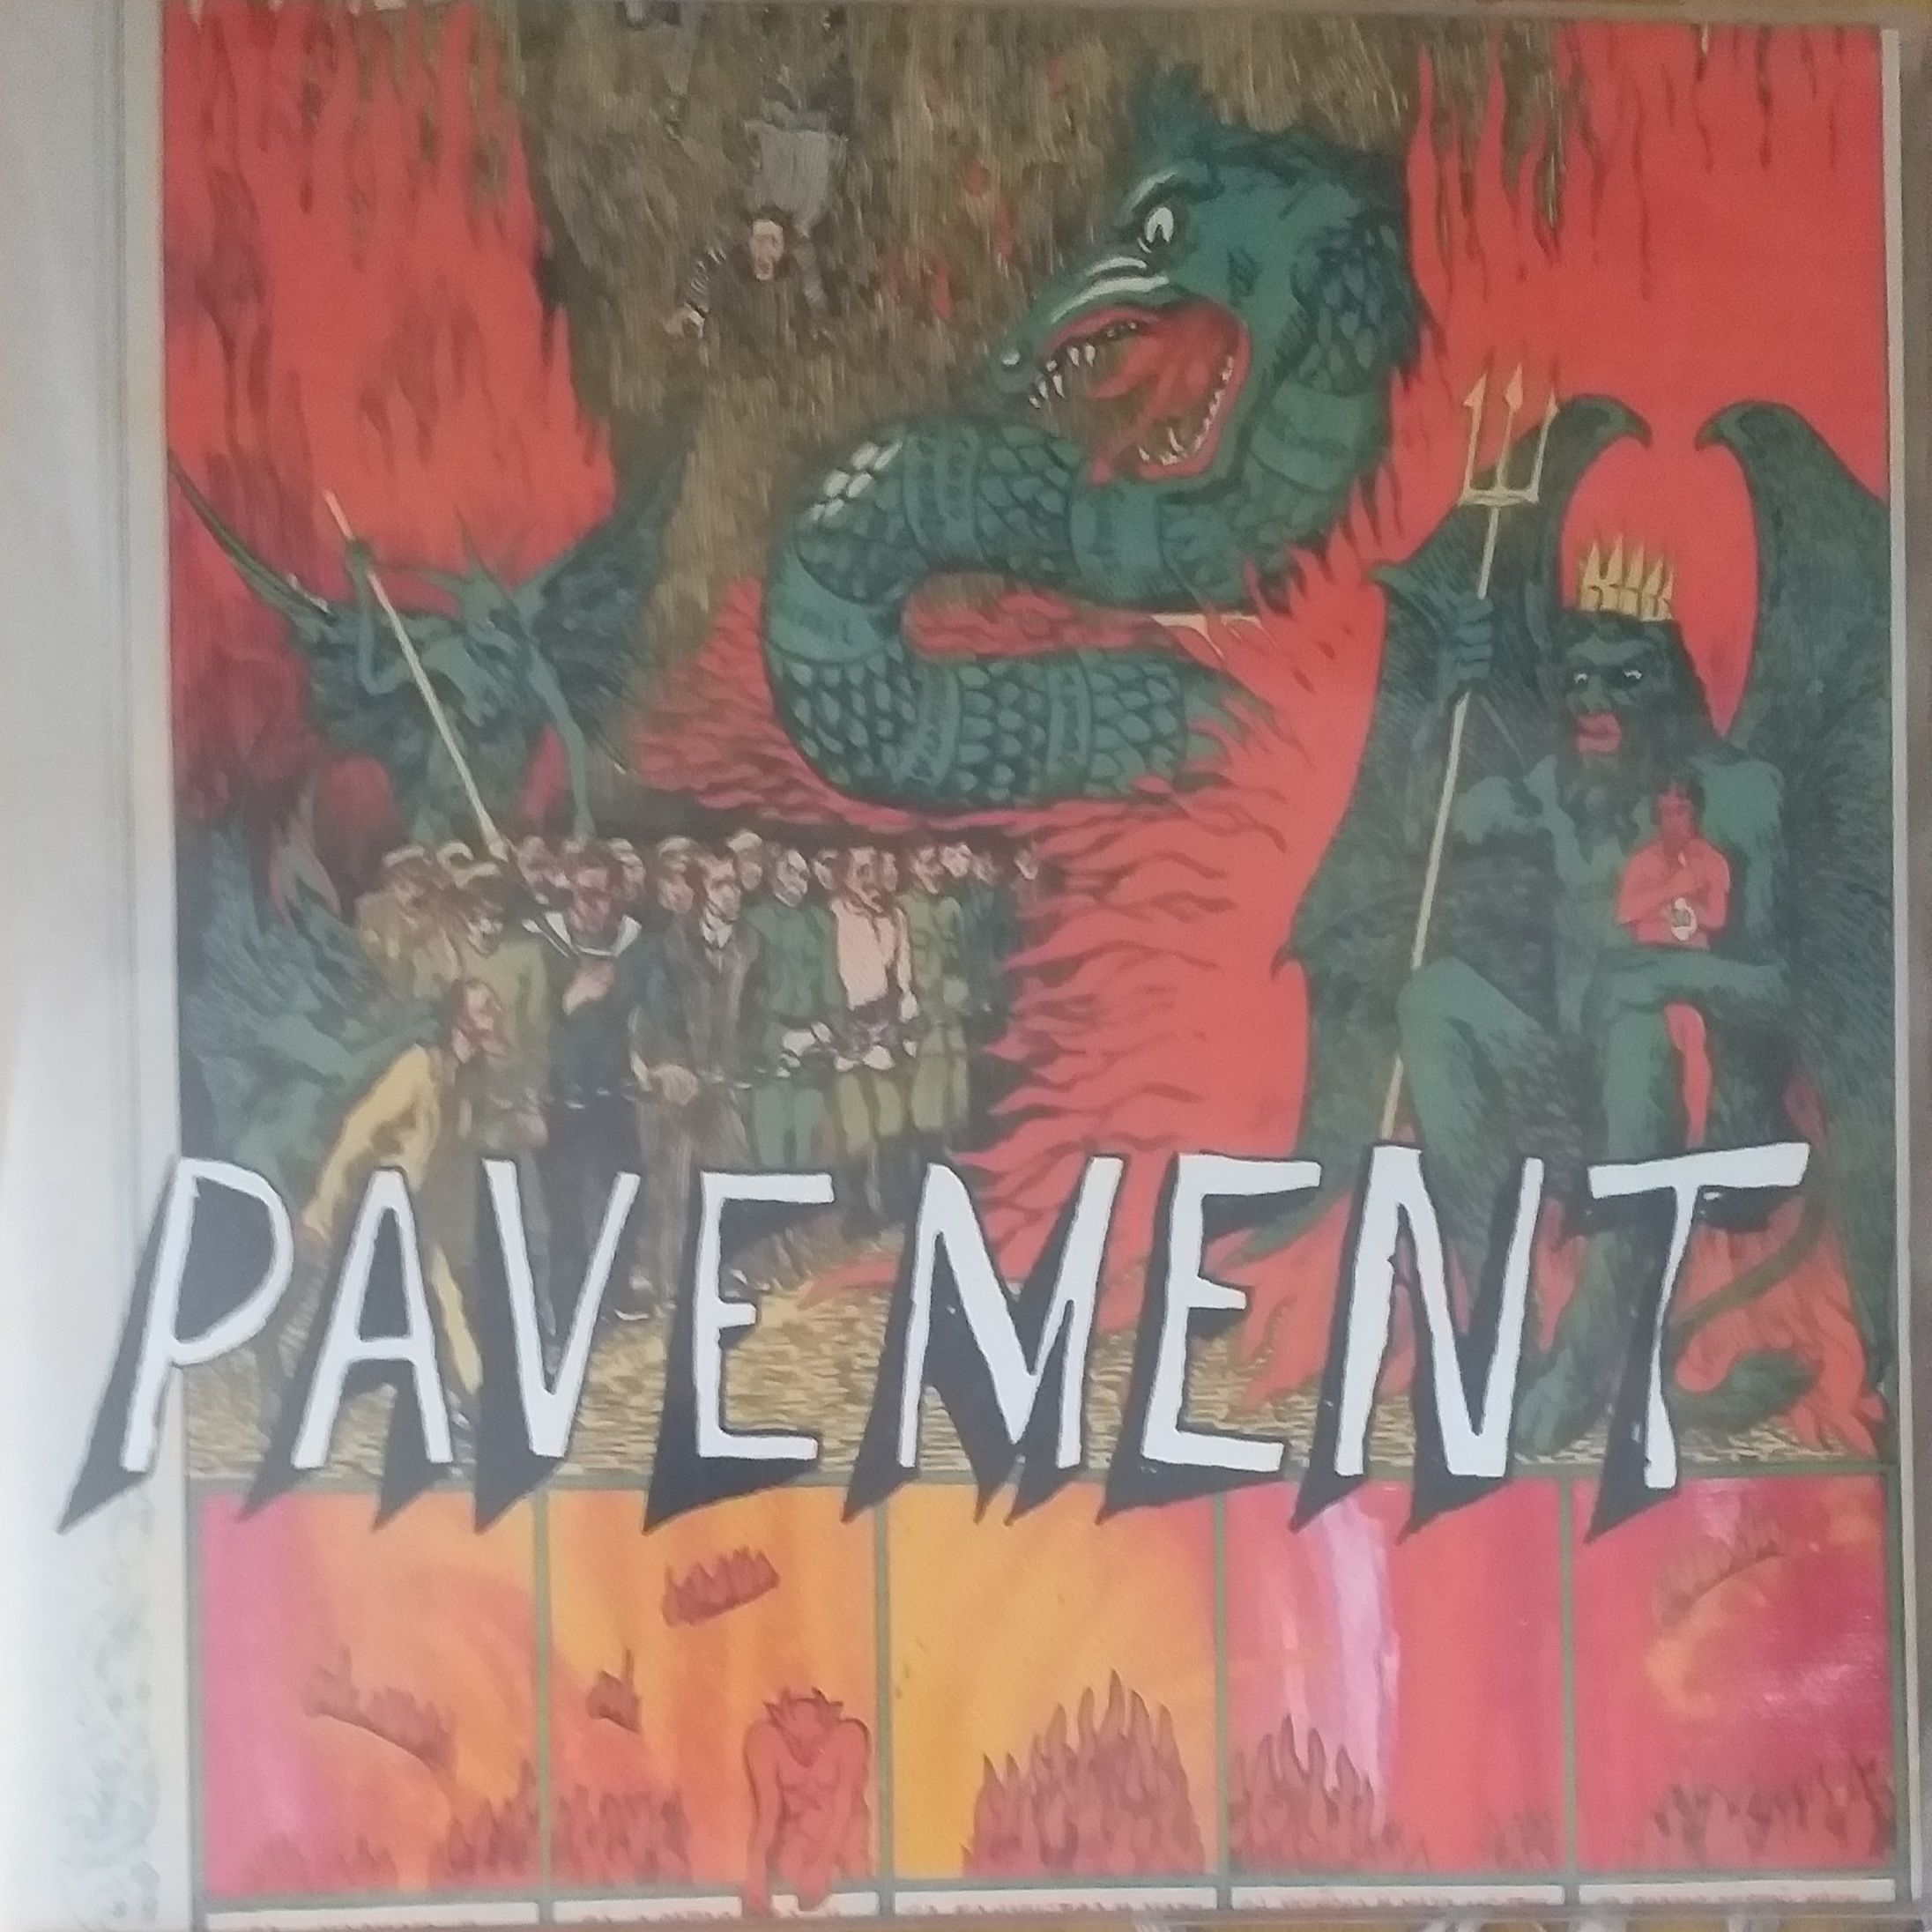 Pavement Quarantine the past LP undefined